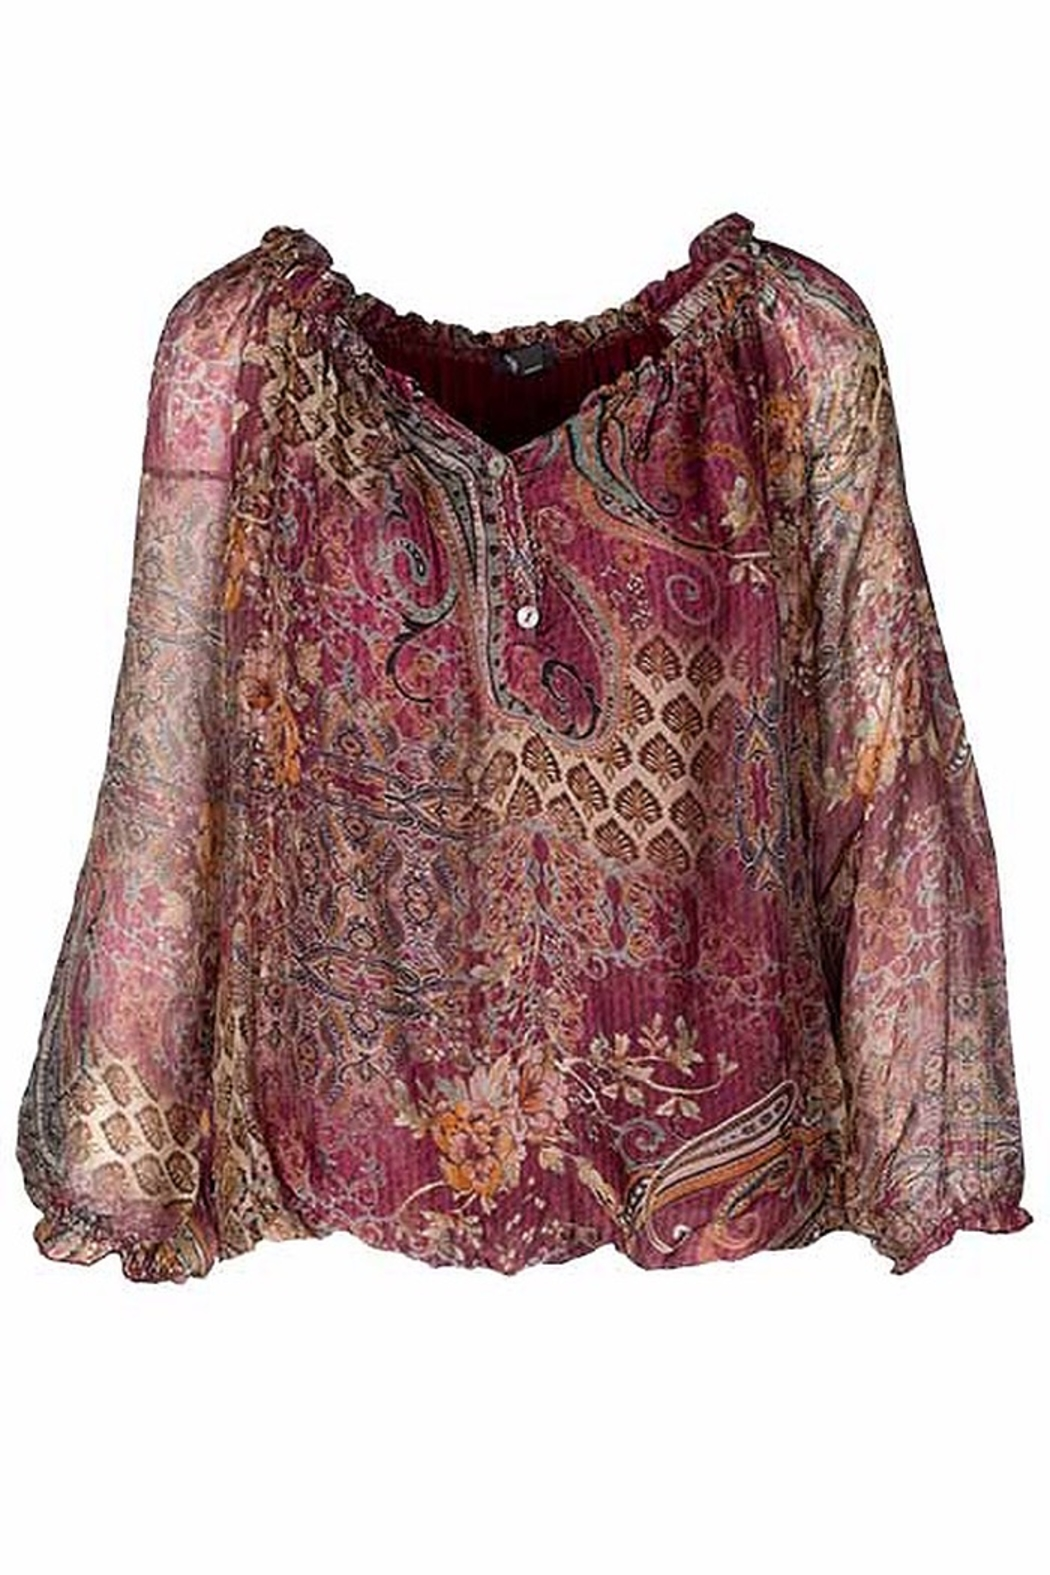 M made in Italy Cranberry Floral Button Down Blouse - Main Image